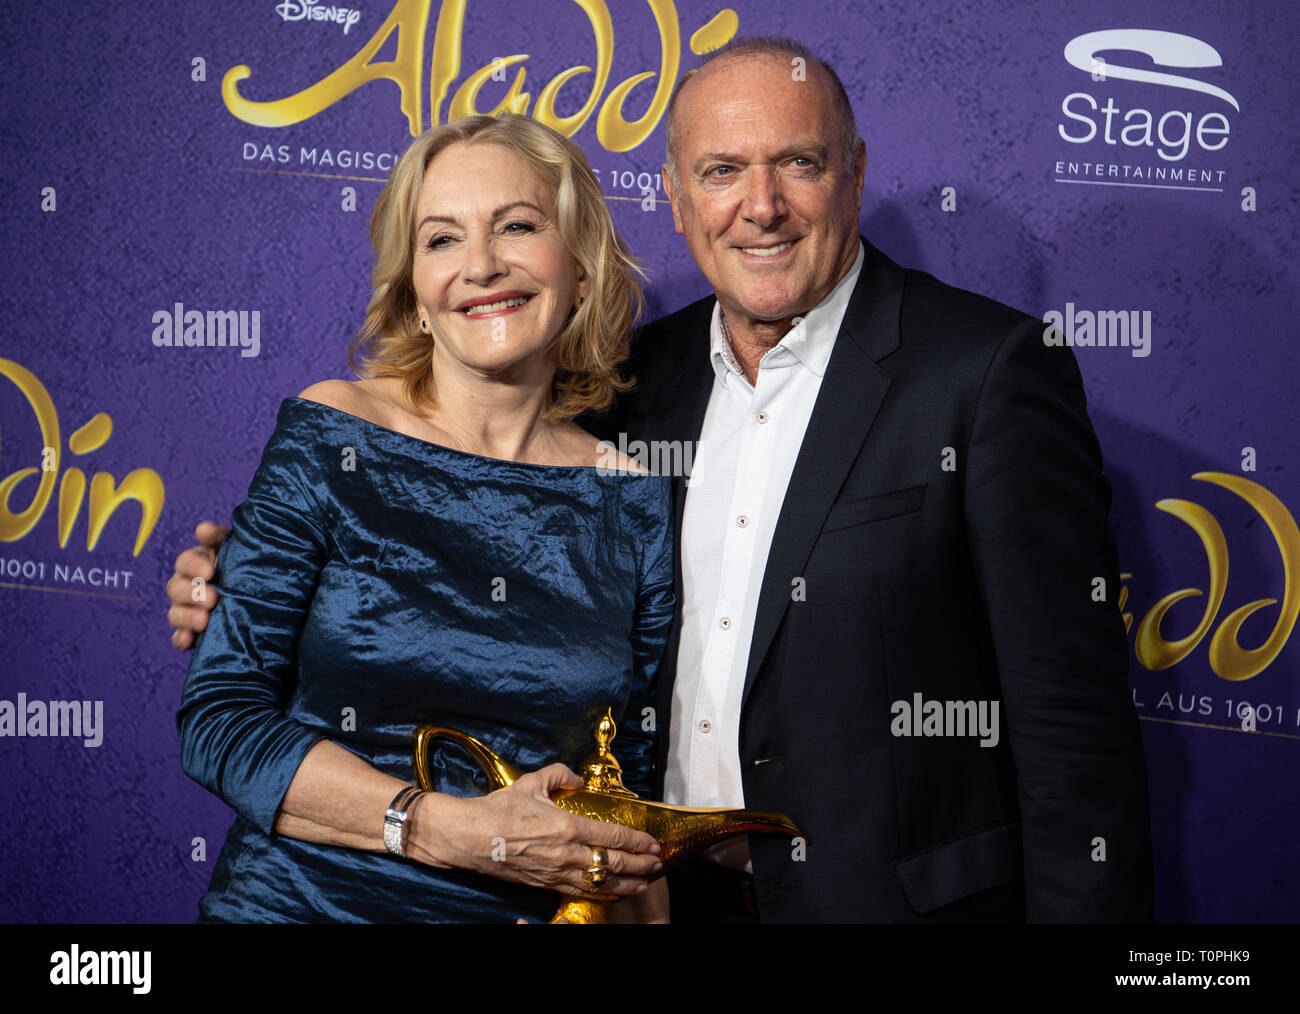 Stuttgart, Germany. 21st Mar, 2019. Gaby Hauptmann, writer, and Josef Schmidbauer come over the red carpet to the premiere of the musical 'Aladdin'. The musical was previously shown in Hamburg. Credit: Fabian Sommer/dpa/Alamy Live News - Stock Image